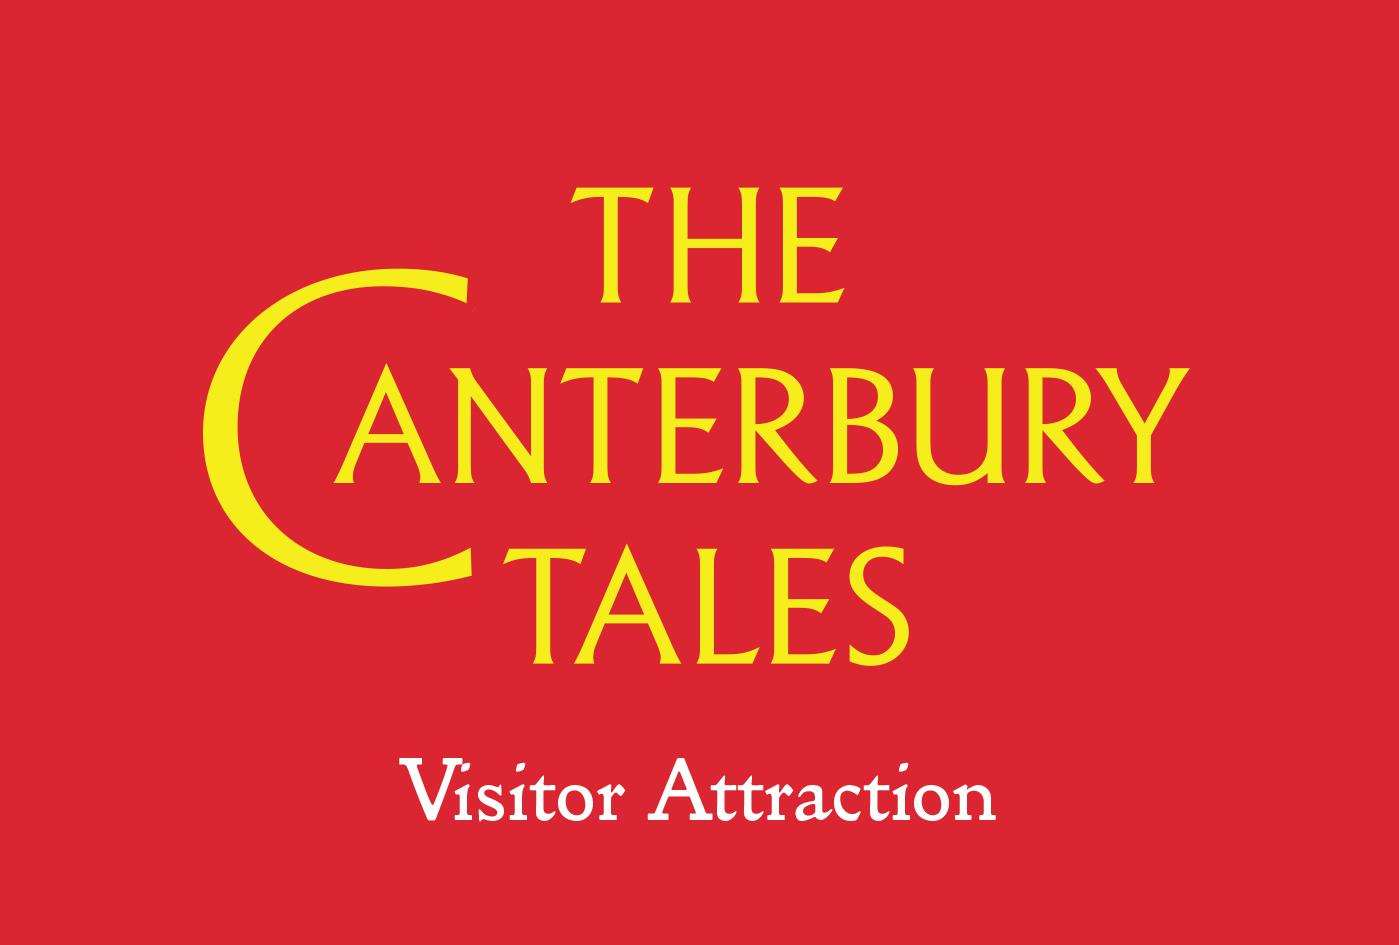 The Canterbury Tales is offering £5 tickets to families living in certain postcodes